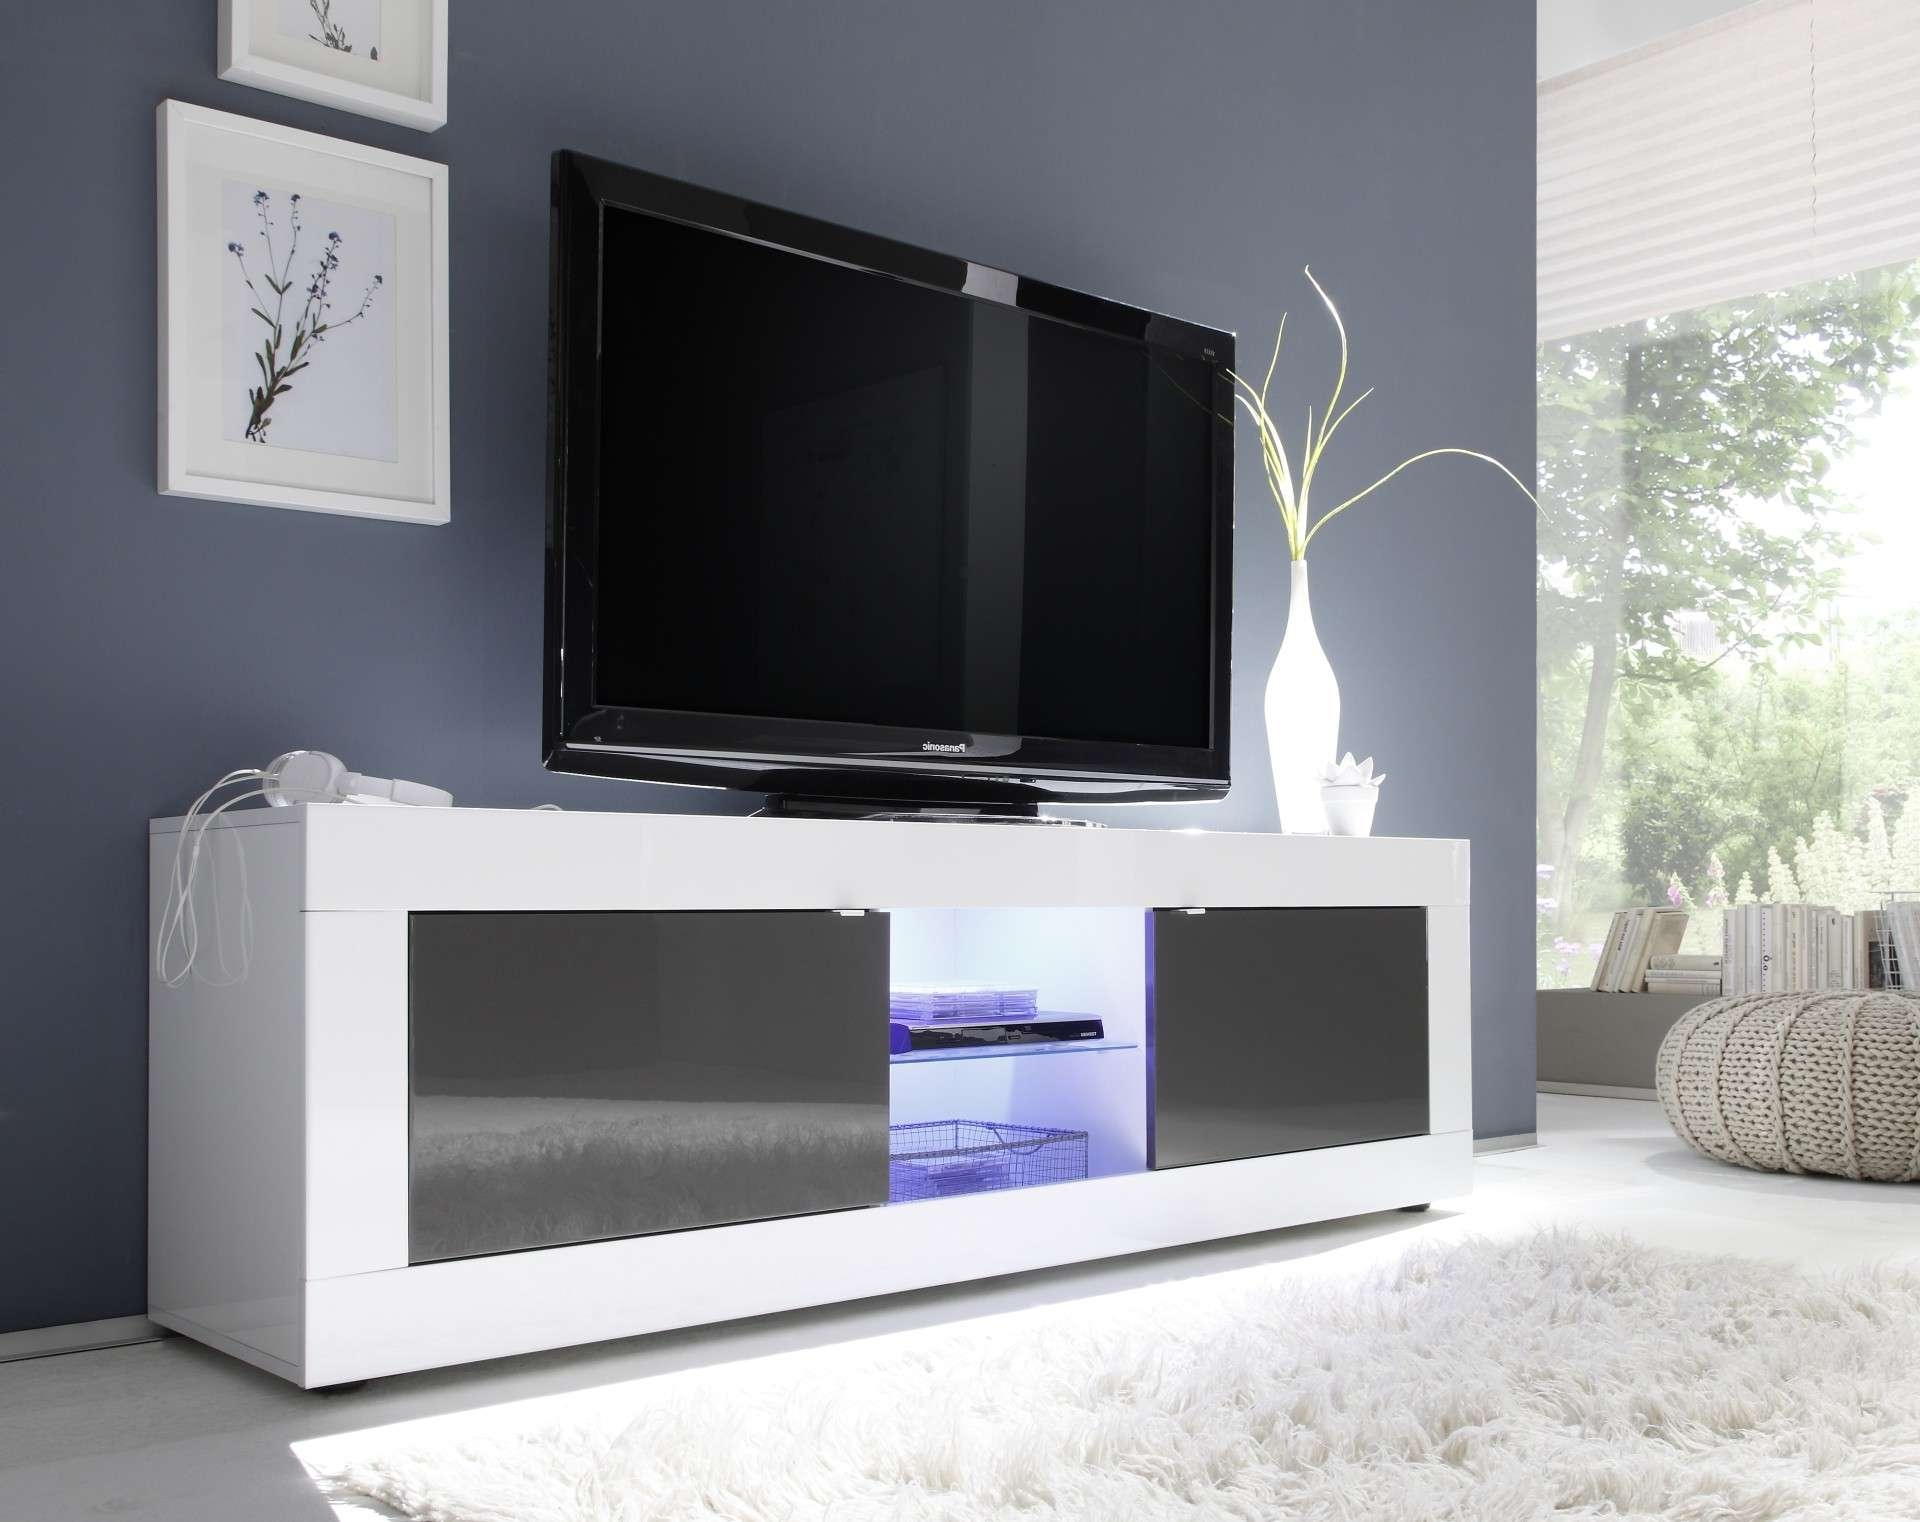 60 Inch Tv Cabinet White – Imanisr With Modern Tv Stands For 60 Inch Tvs (Gallery 2 of 15)